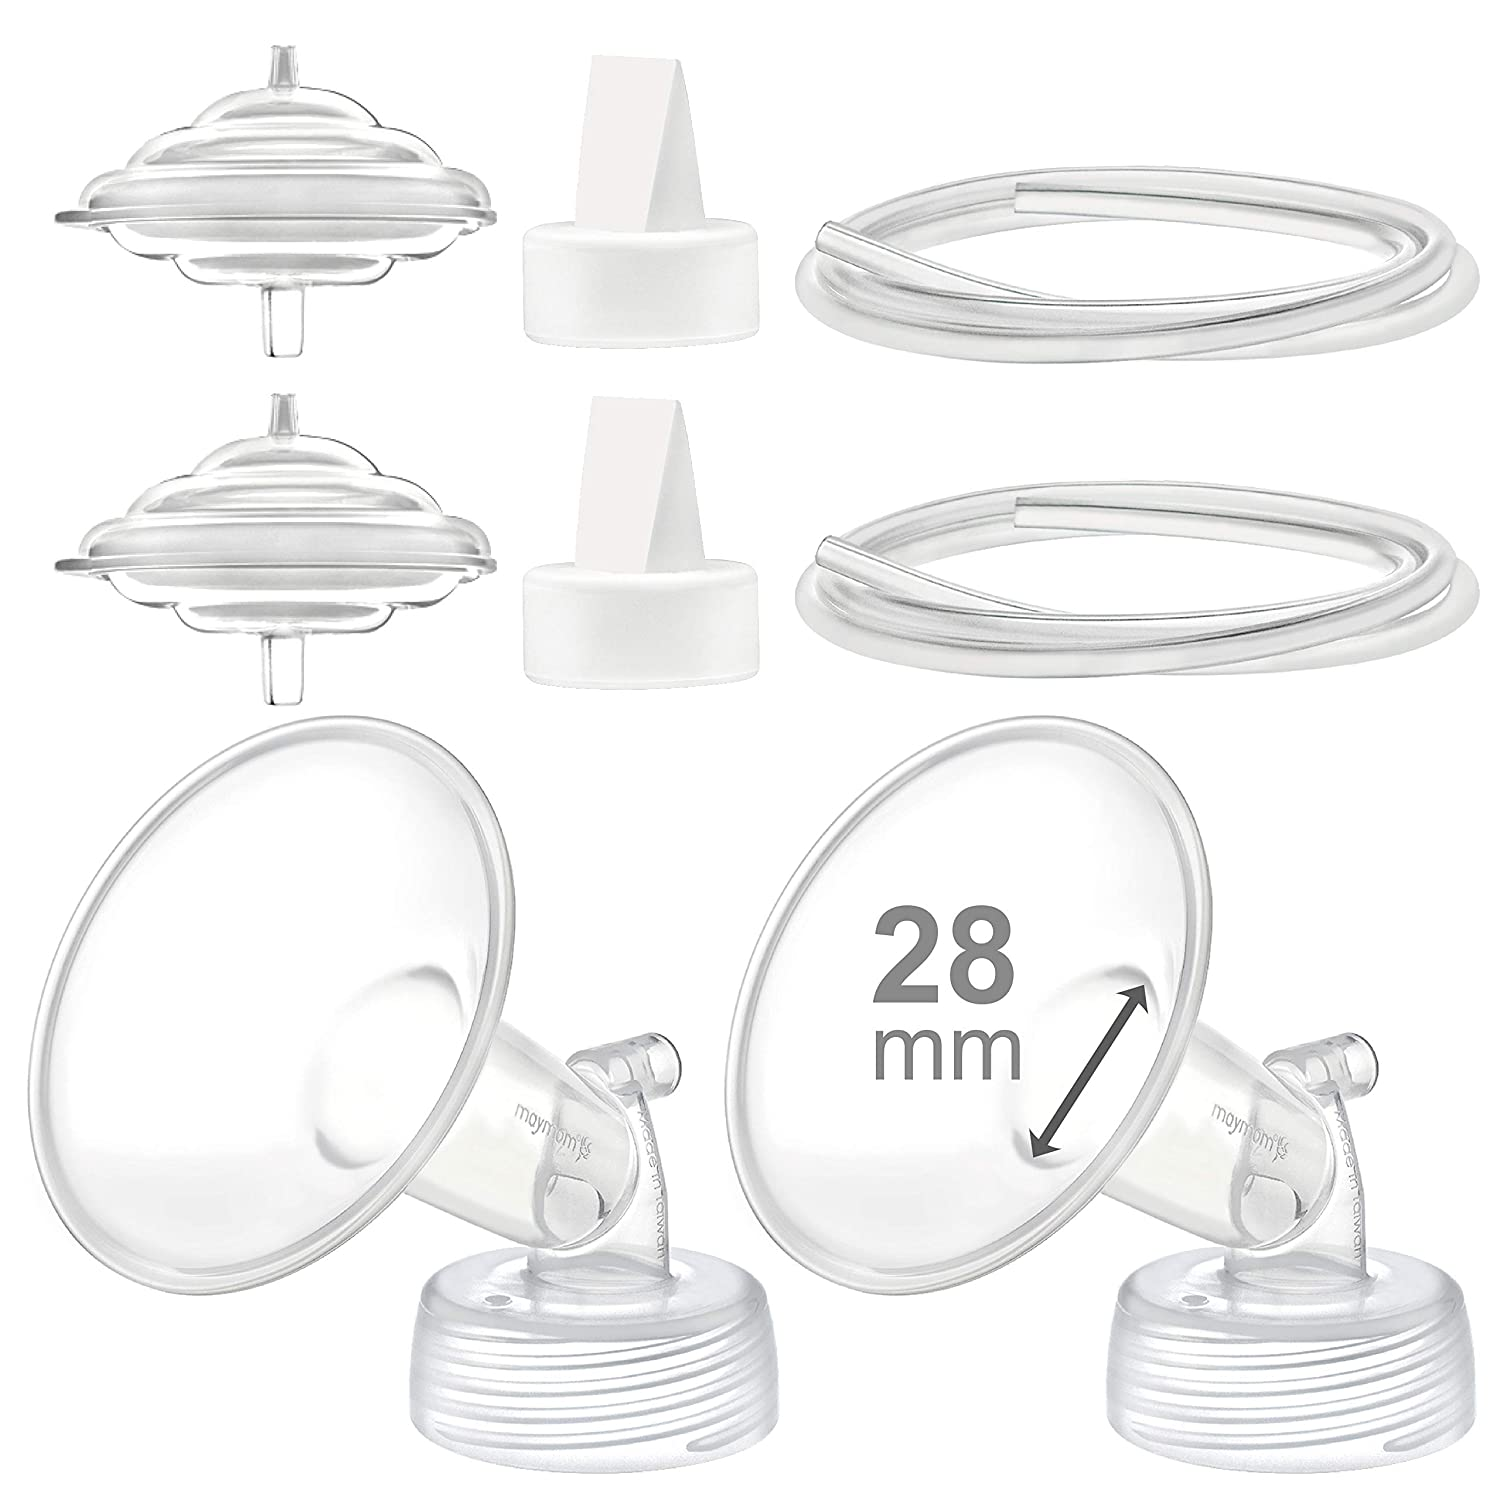 Maymom Pump Parts Compatible with Spectra S2 Spectra S1 Spectra 9 Plus Breastpump, Flange (28mm) Valve Tubing Backflow Protector, Not Original Spectra Pump Parts Not Original Spectra S2 Accessories